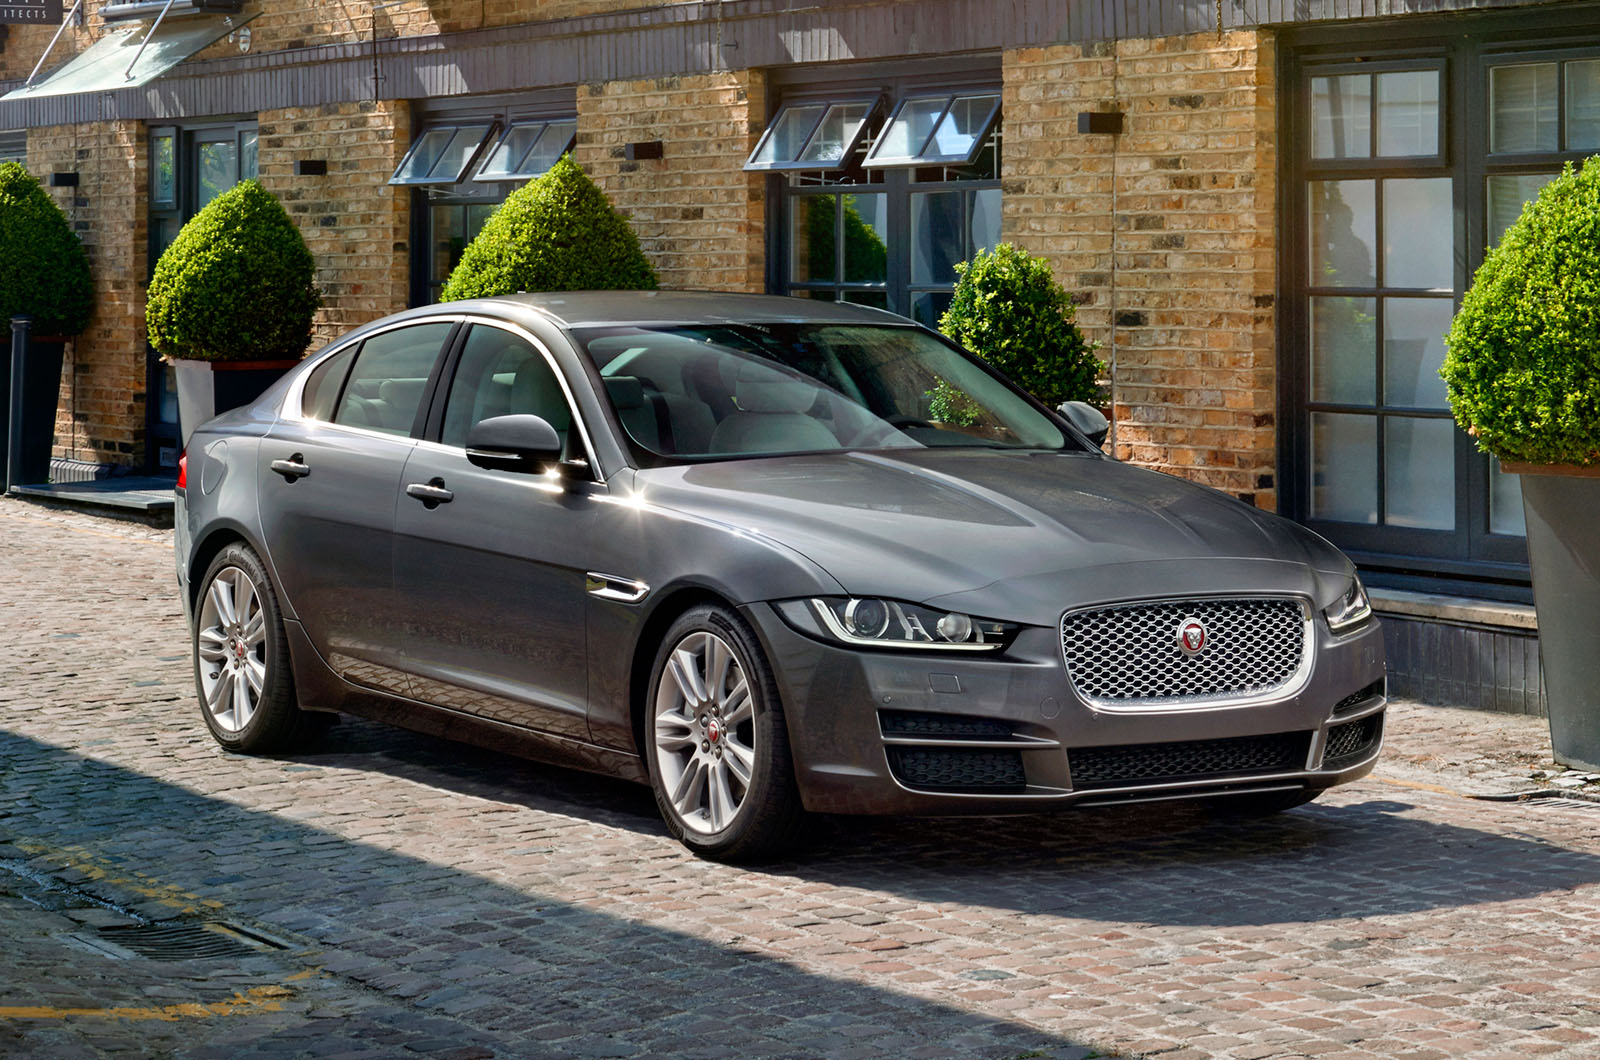 2015 Jaguar XE - pricing, spec, review, gallery and video